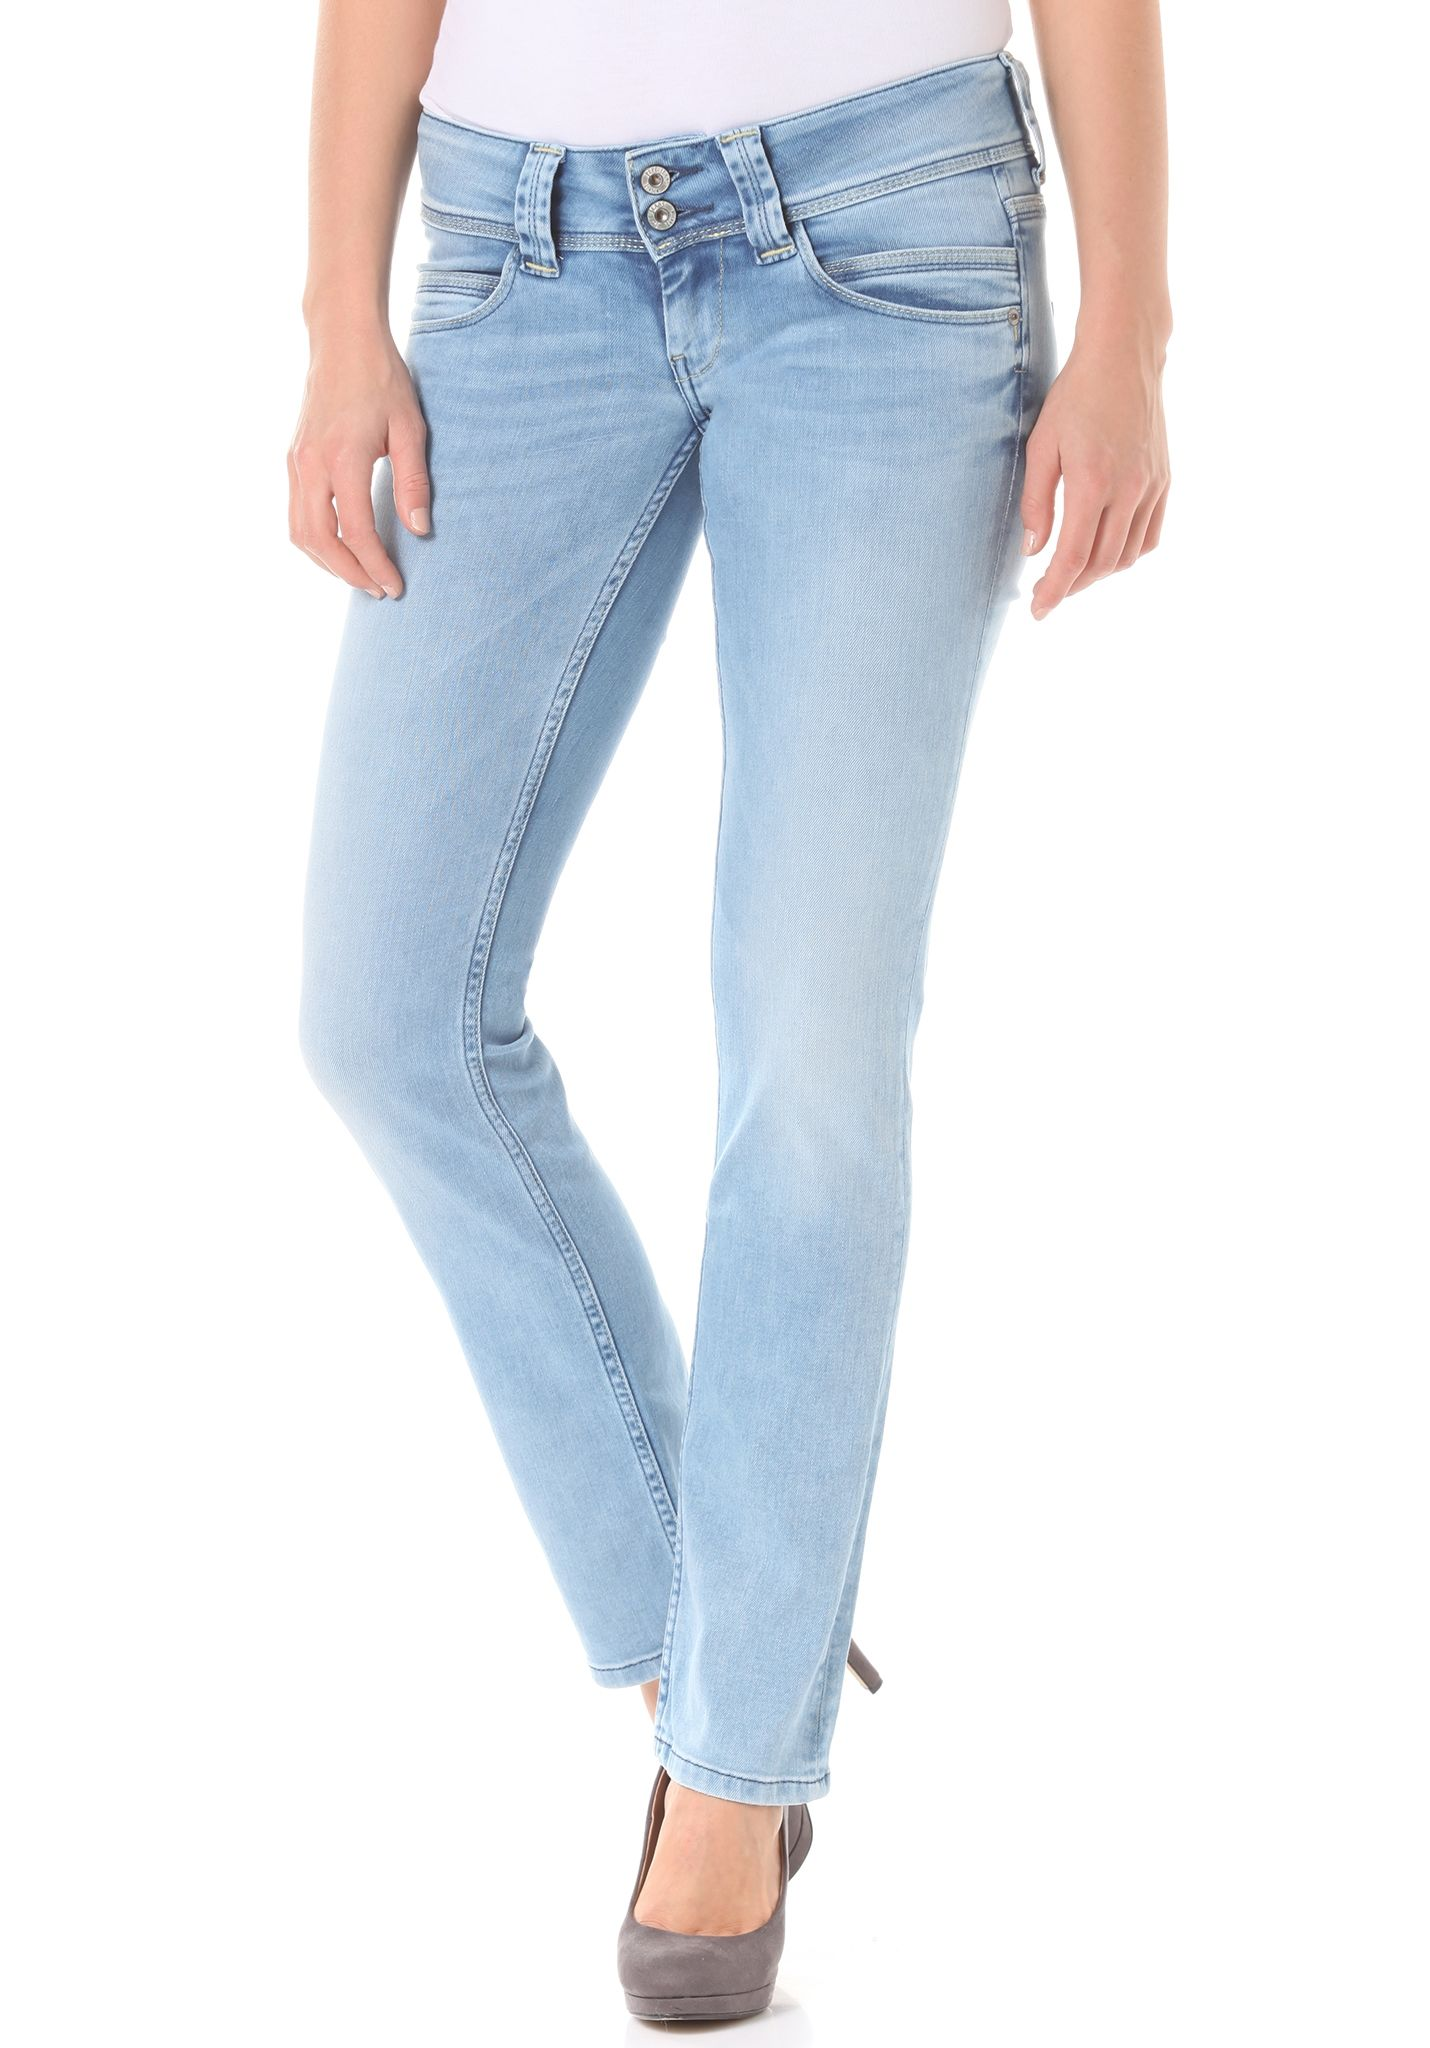 4aac510d7b6 PEPE JEANS Venus - Denim Jeans for Women - Blue - Planet Sports